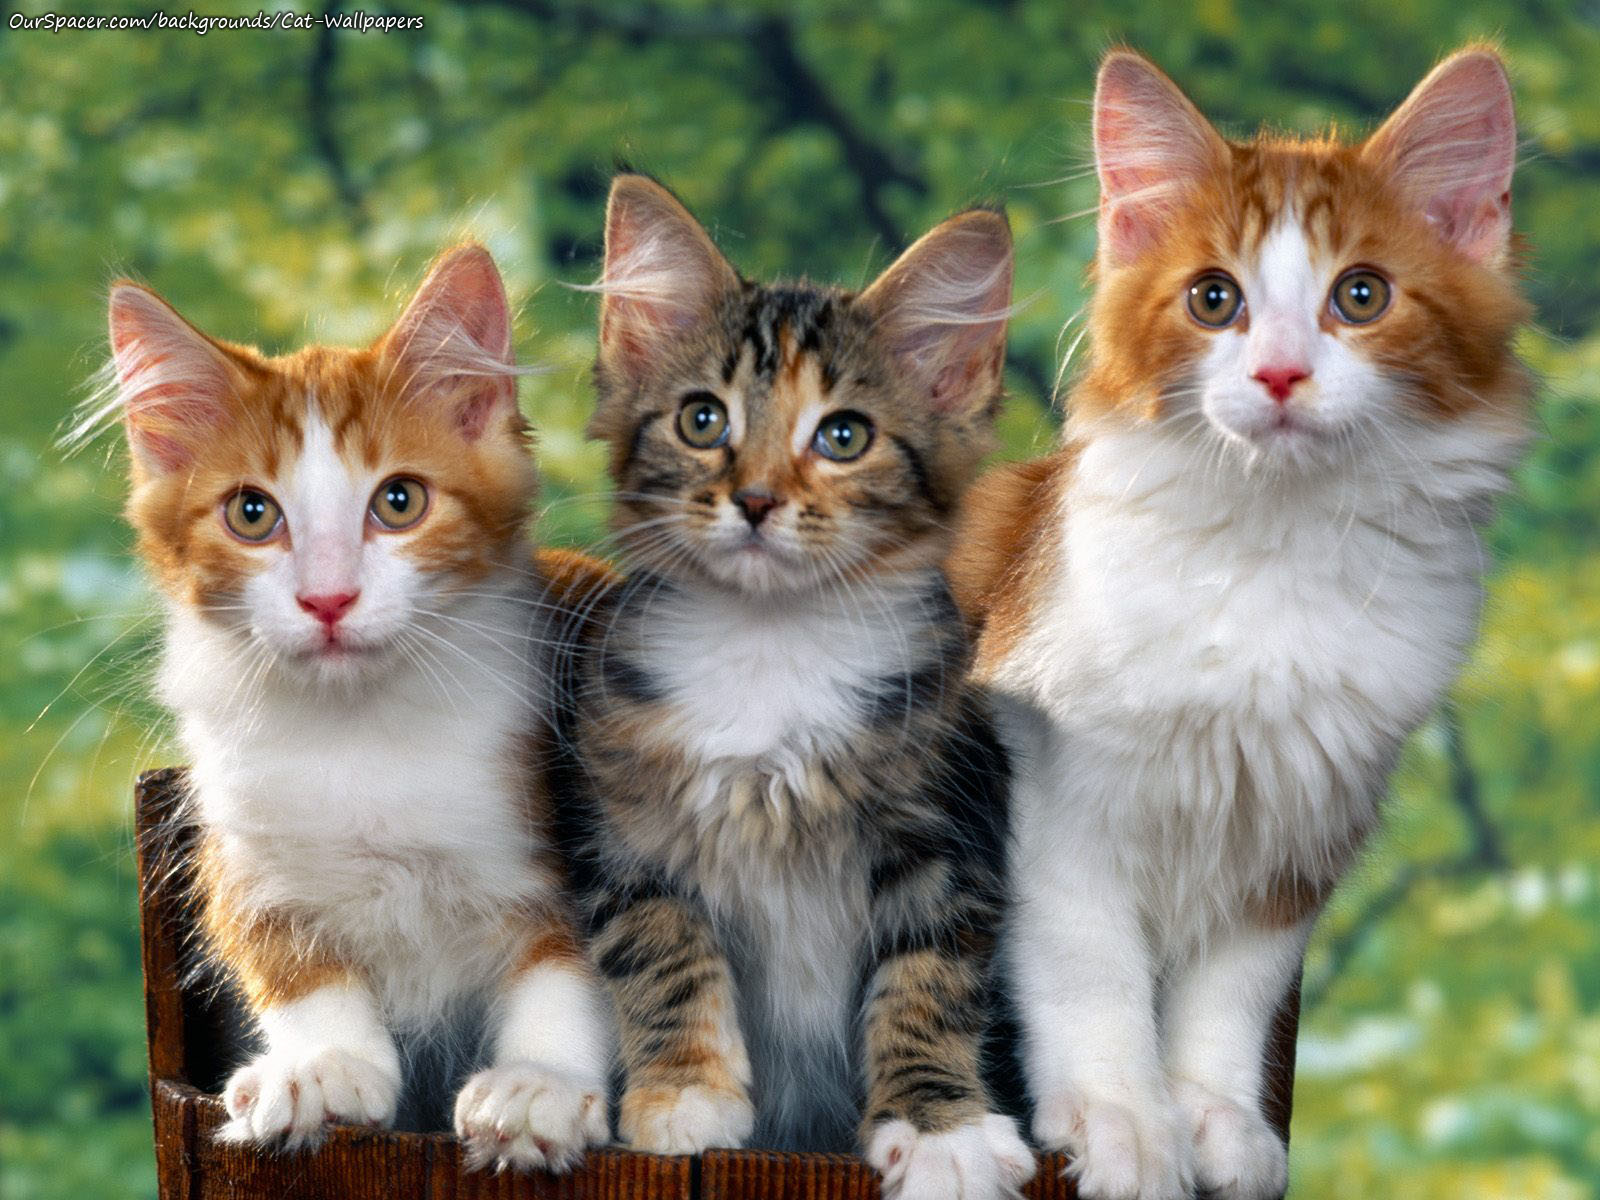 Three cats wallpapers for myspace, twitter, and hi5 backgrounds